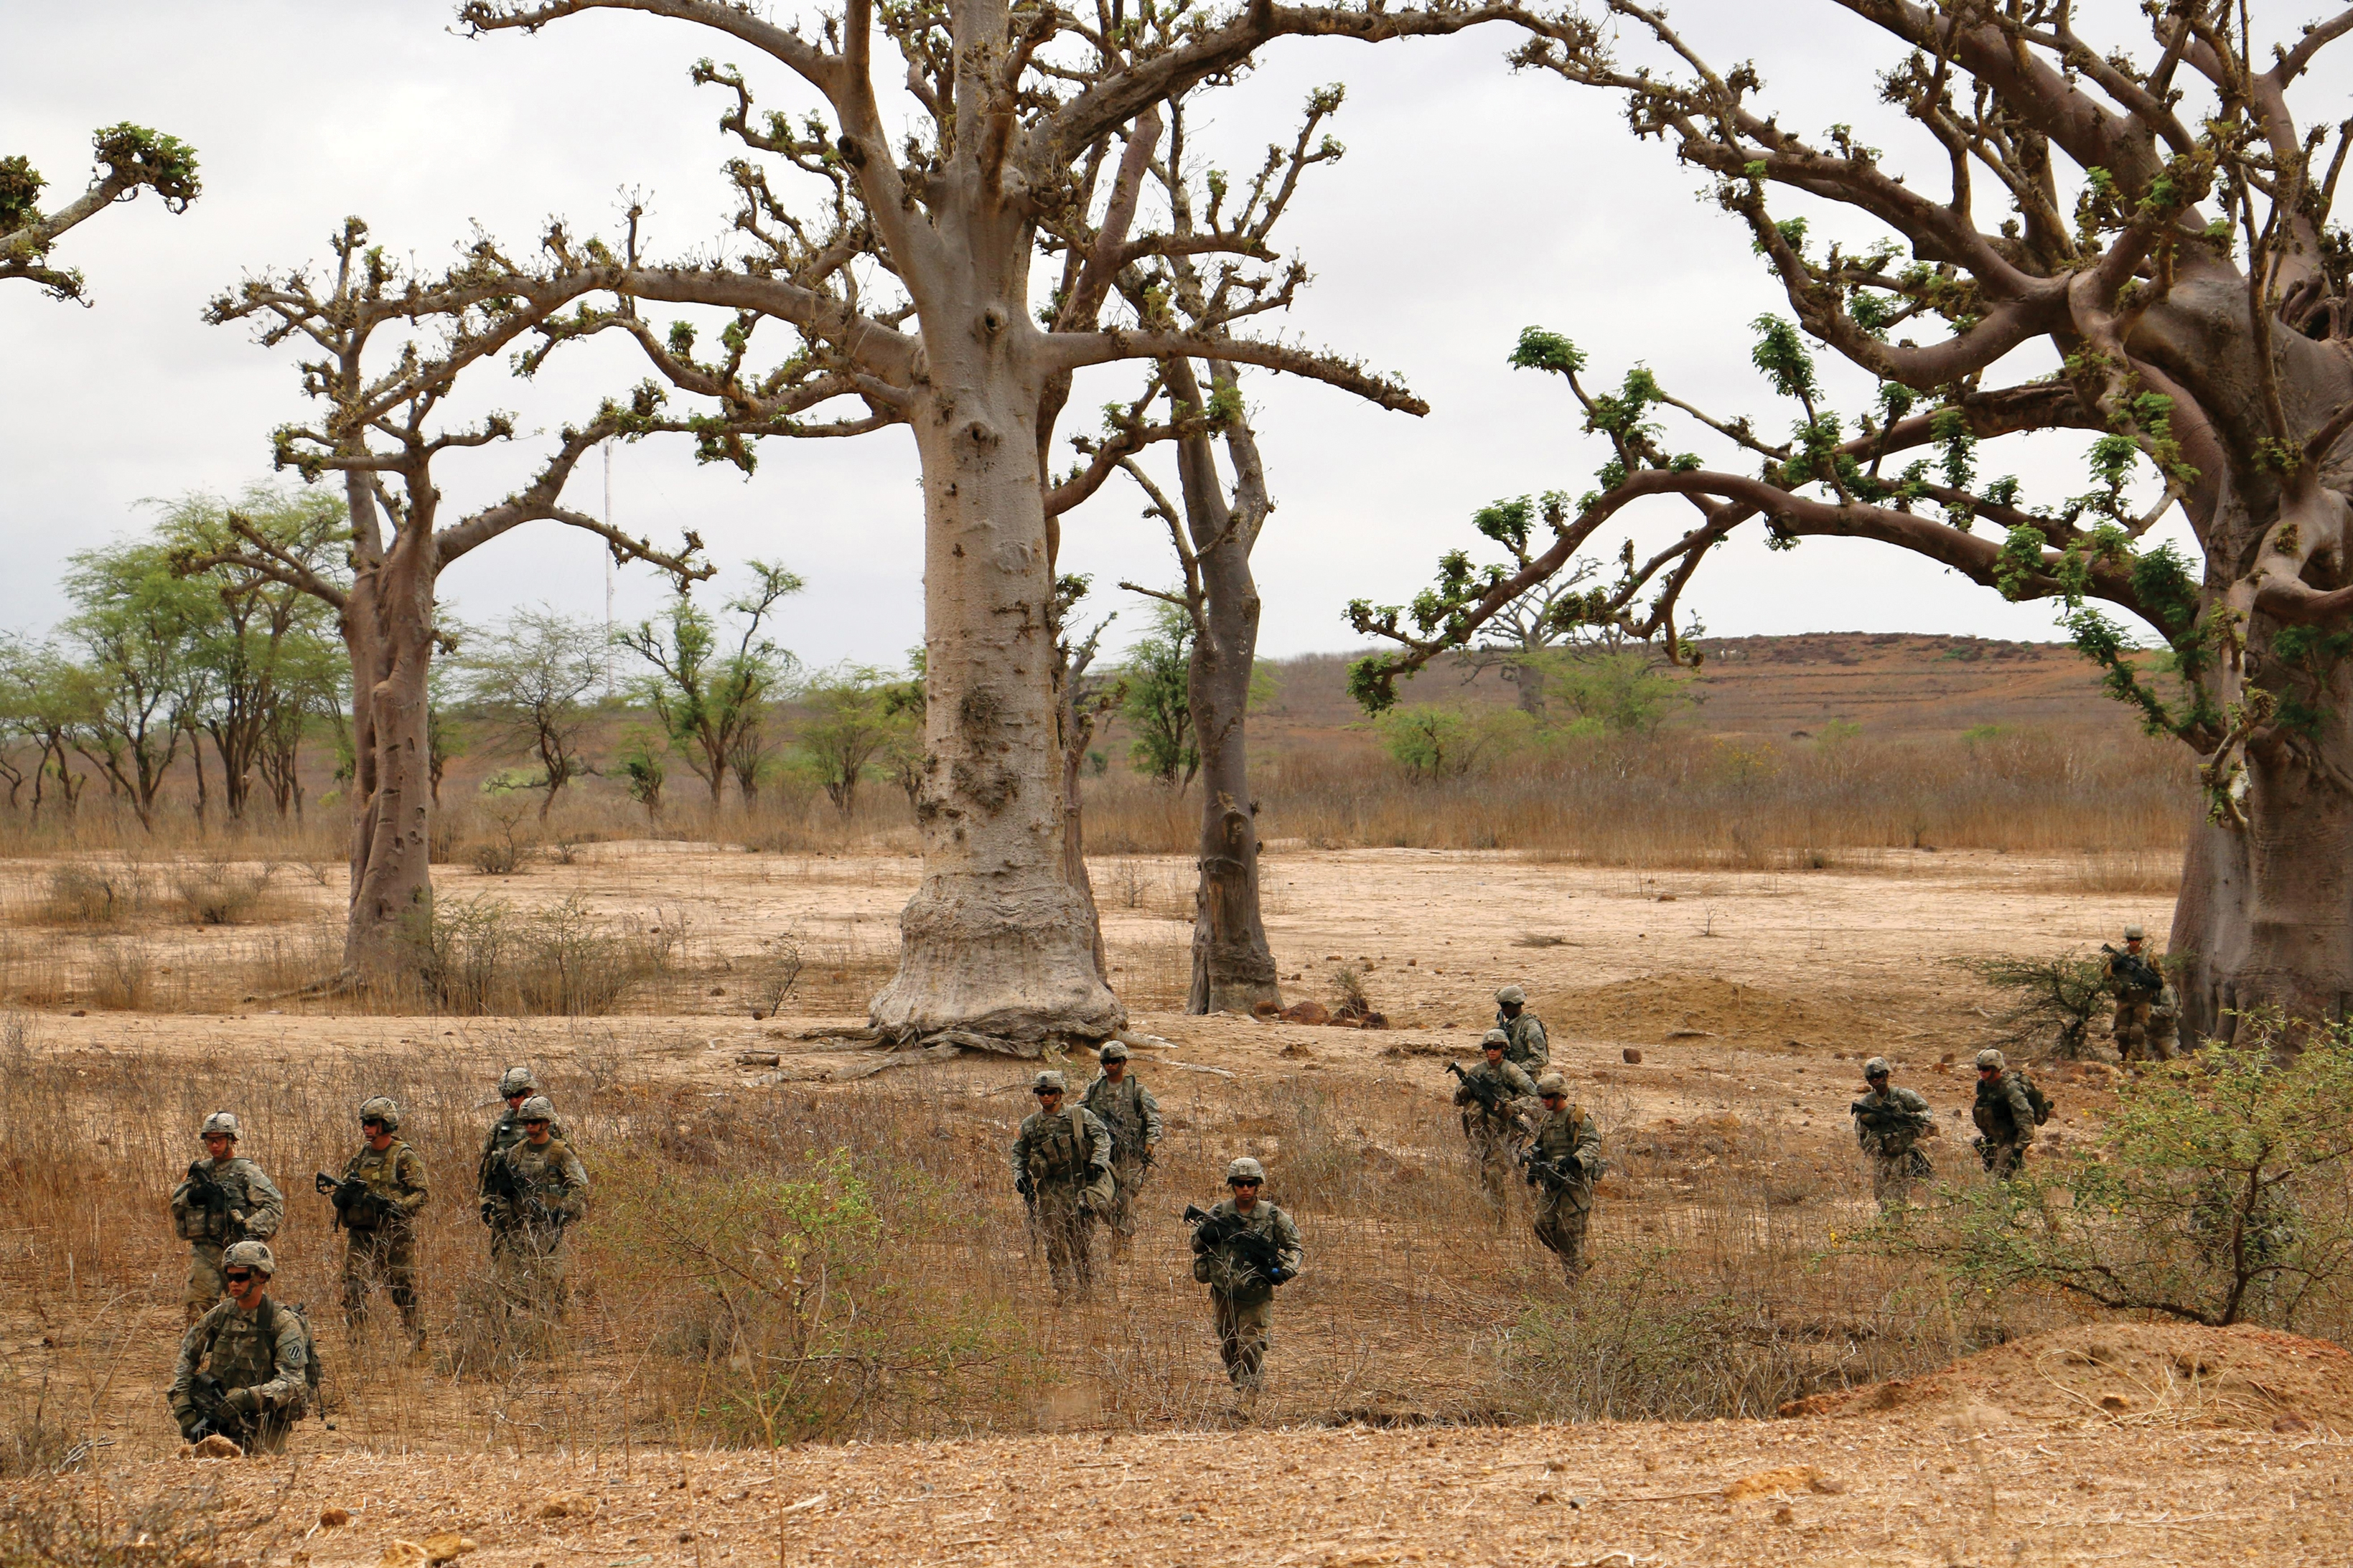 Readying for live-fire training in Senegal, soldiers with the 3rd Infantry Division move into position.